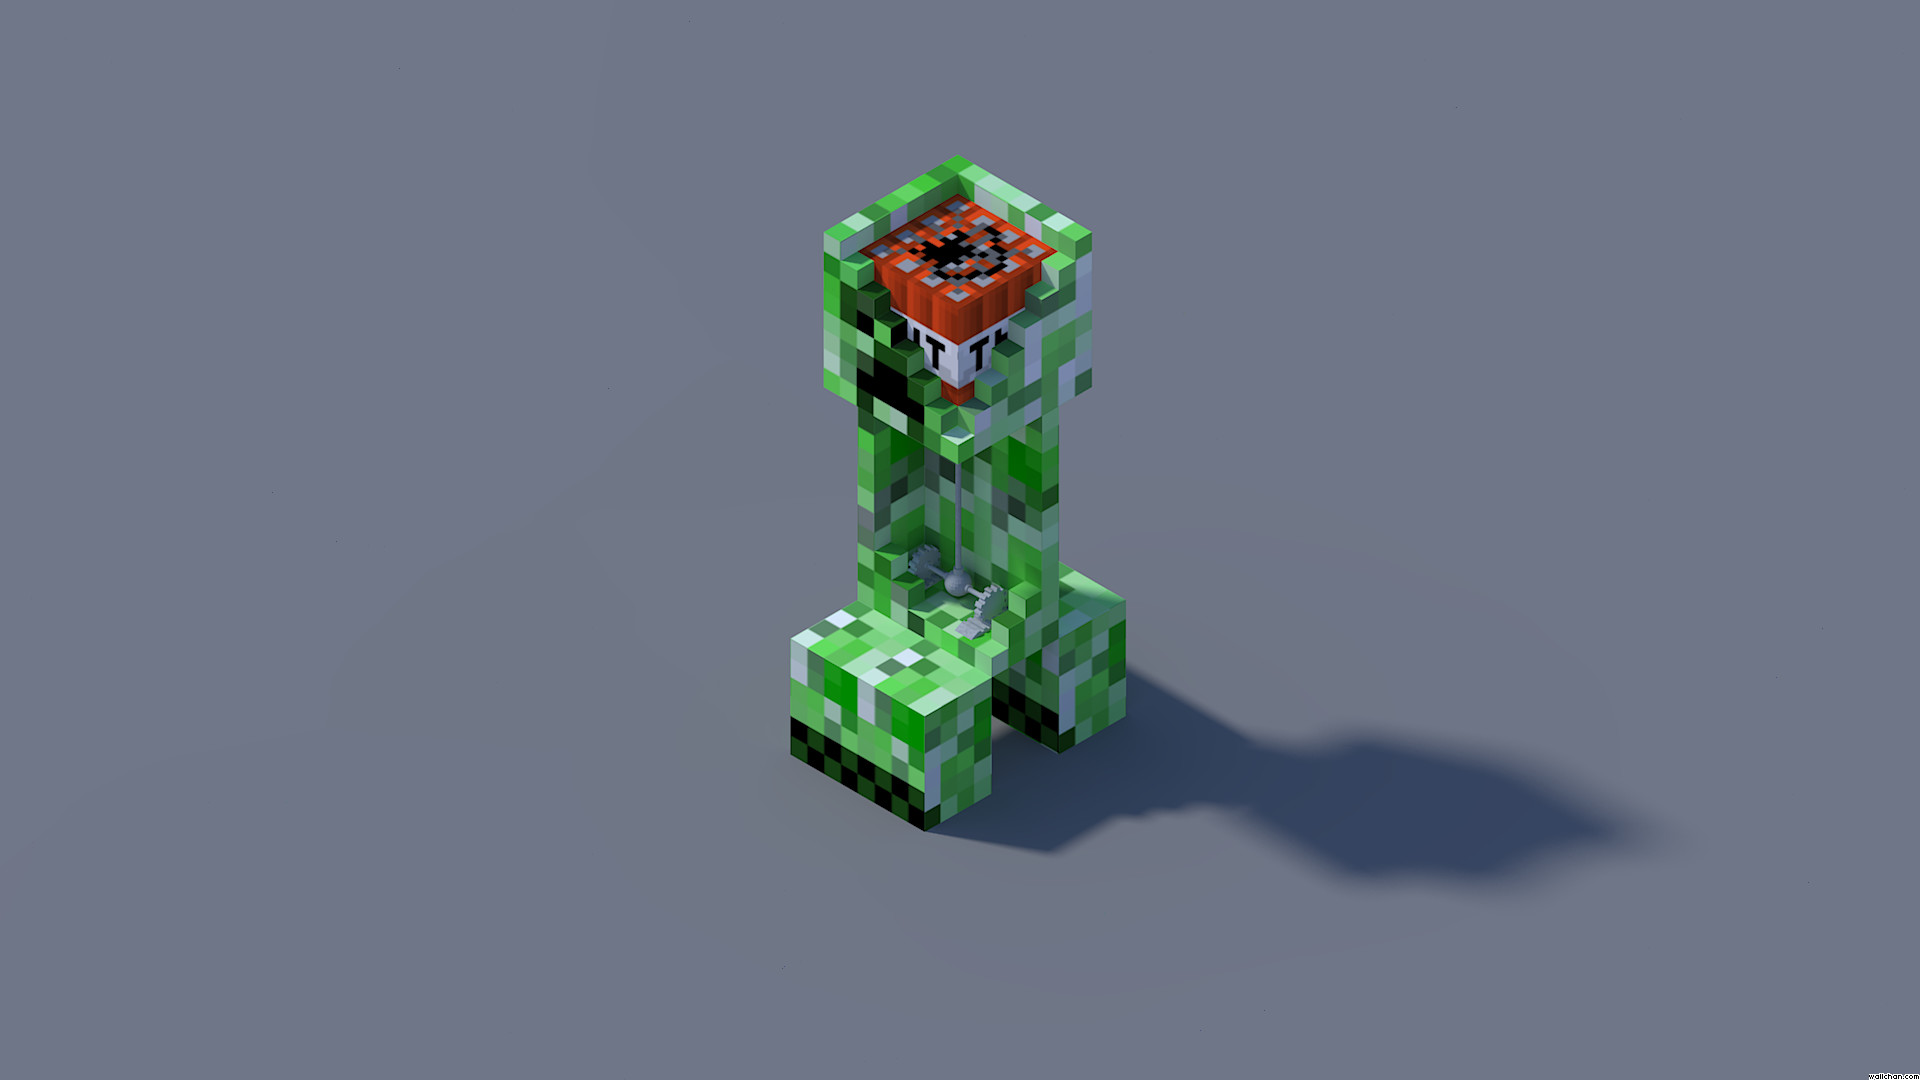 Must see Wallpaper Minecraft Kawaii - 602194-minecraft-creeper-backgrounds-1920x1080-hd-for-mobile  Snapshot_866290.jpg